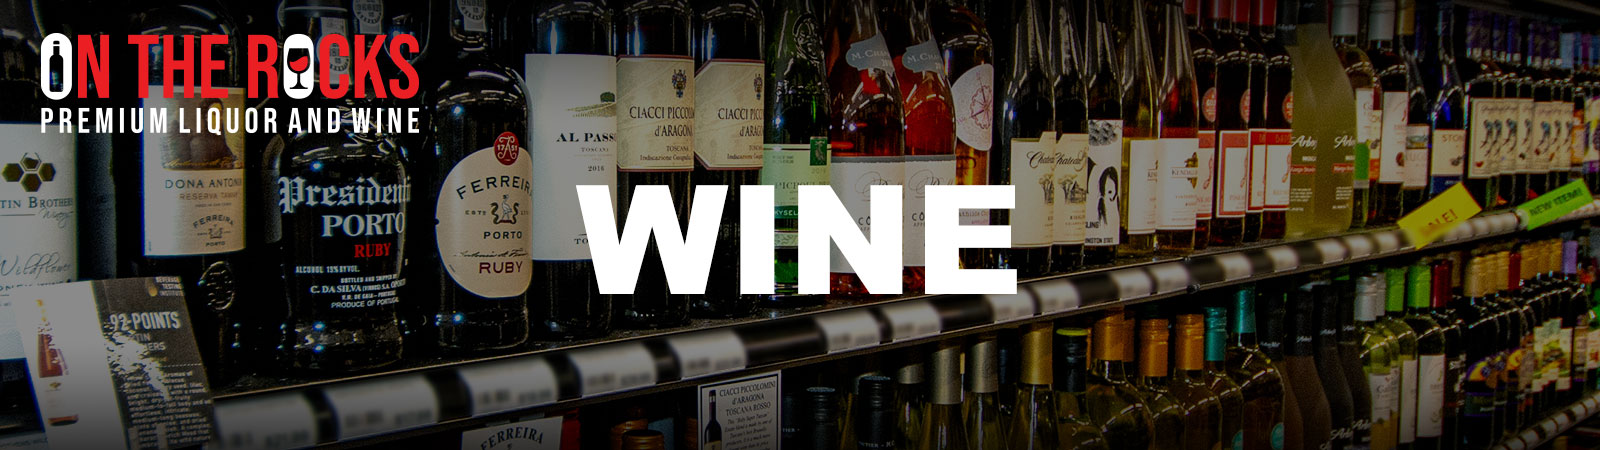 On-The-Rocks-Premium-Liquor-and-Wine-St.-Charles-Wine-Page-Banner